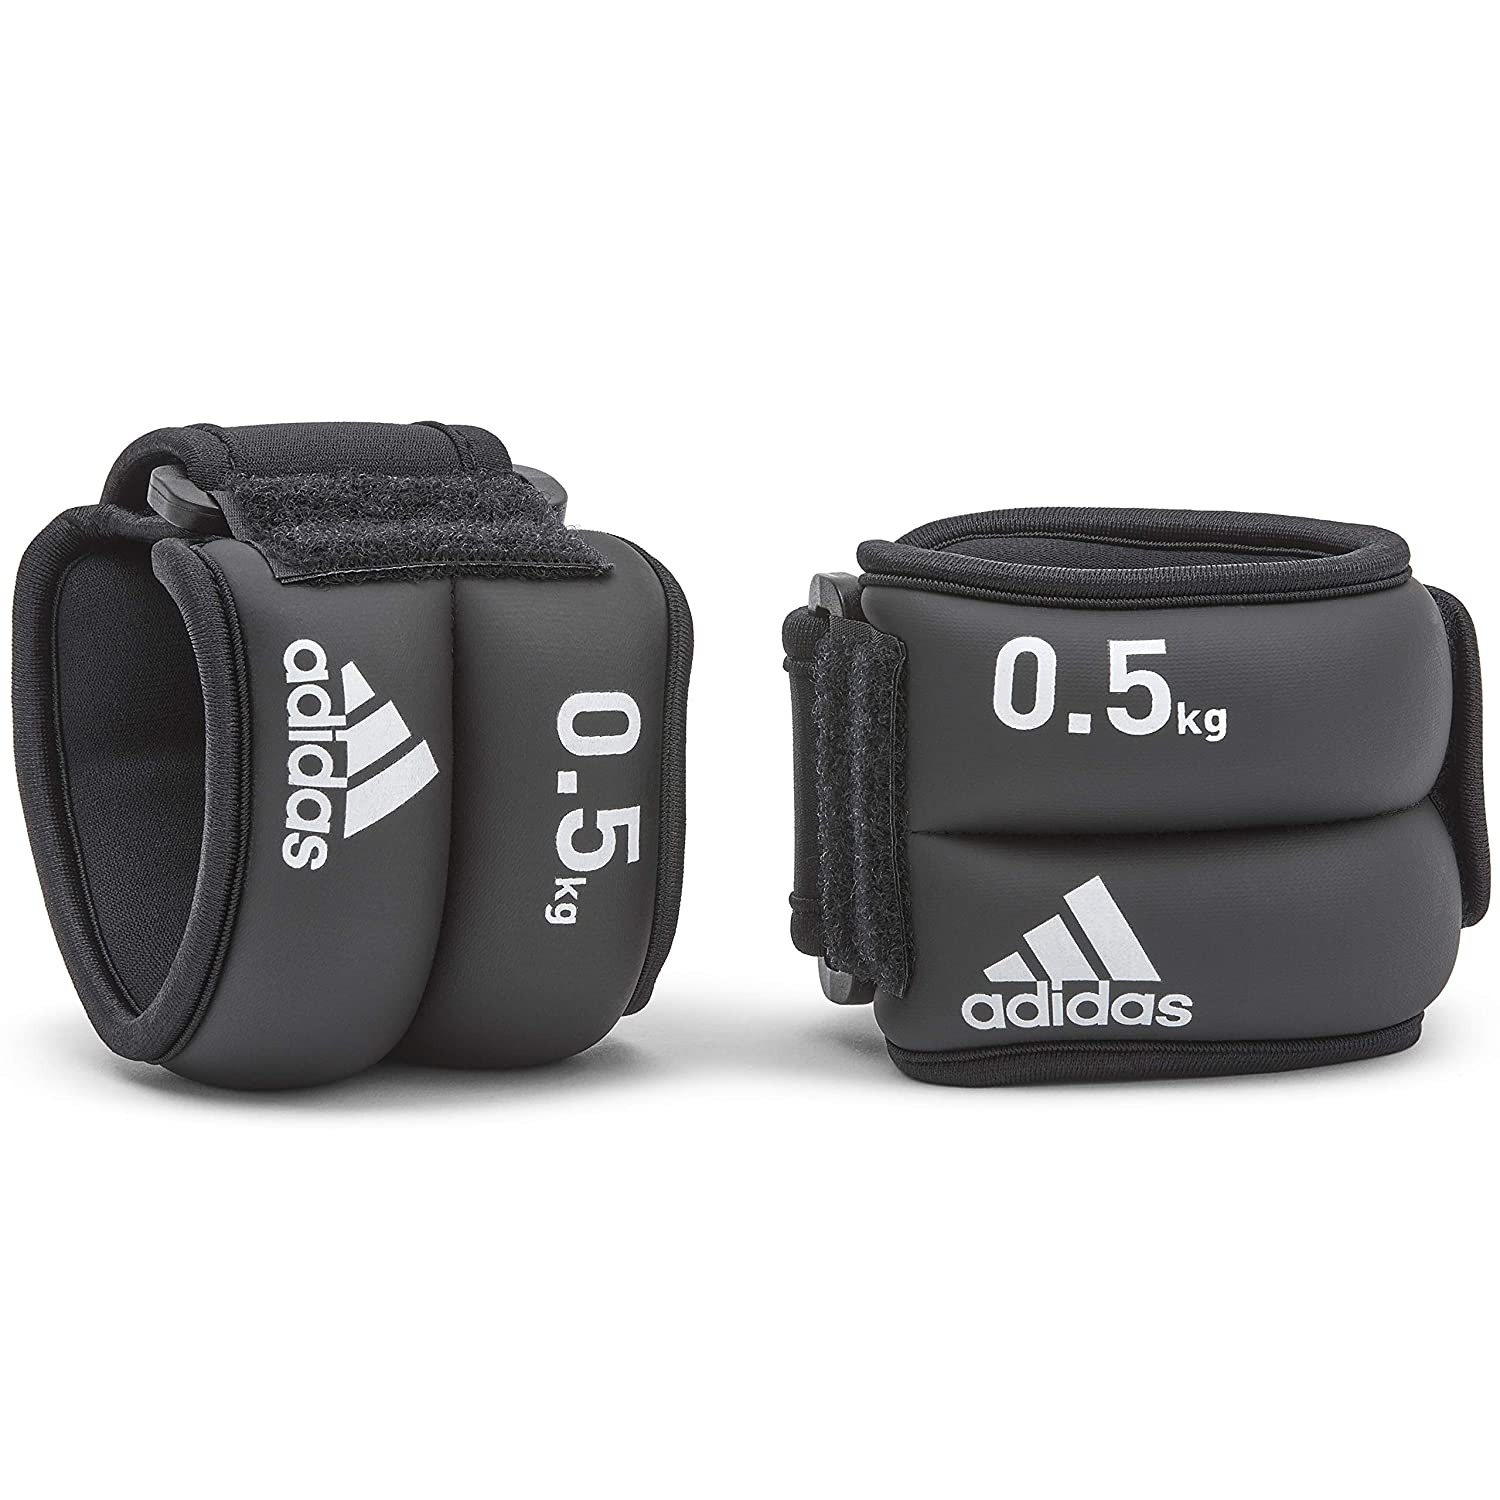 4d61005da8d9 Amazon.com   adidas Ankle and Wrist Weights 0.5 kg   Exercise ...